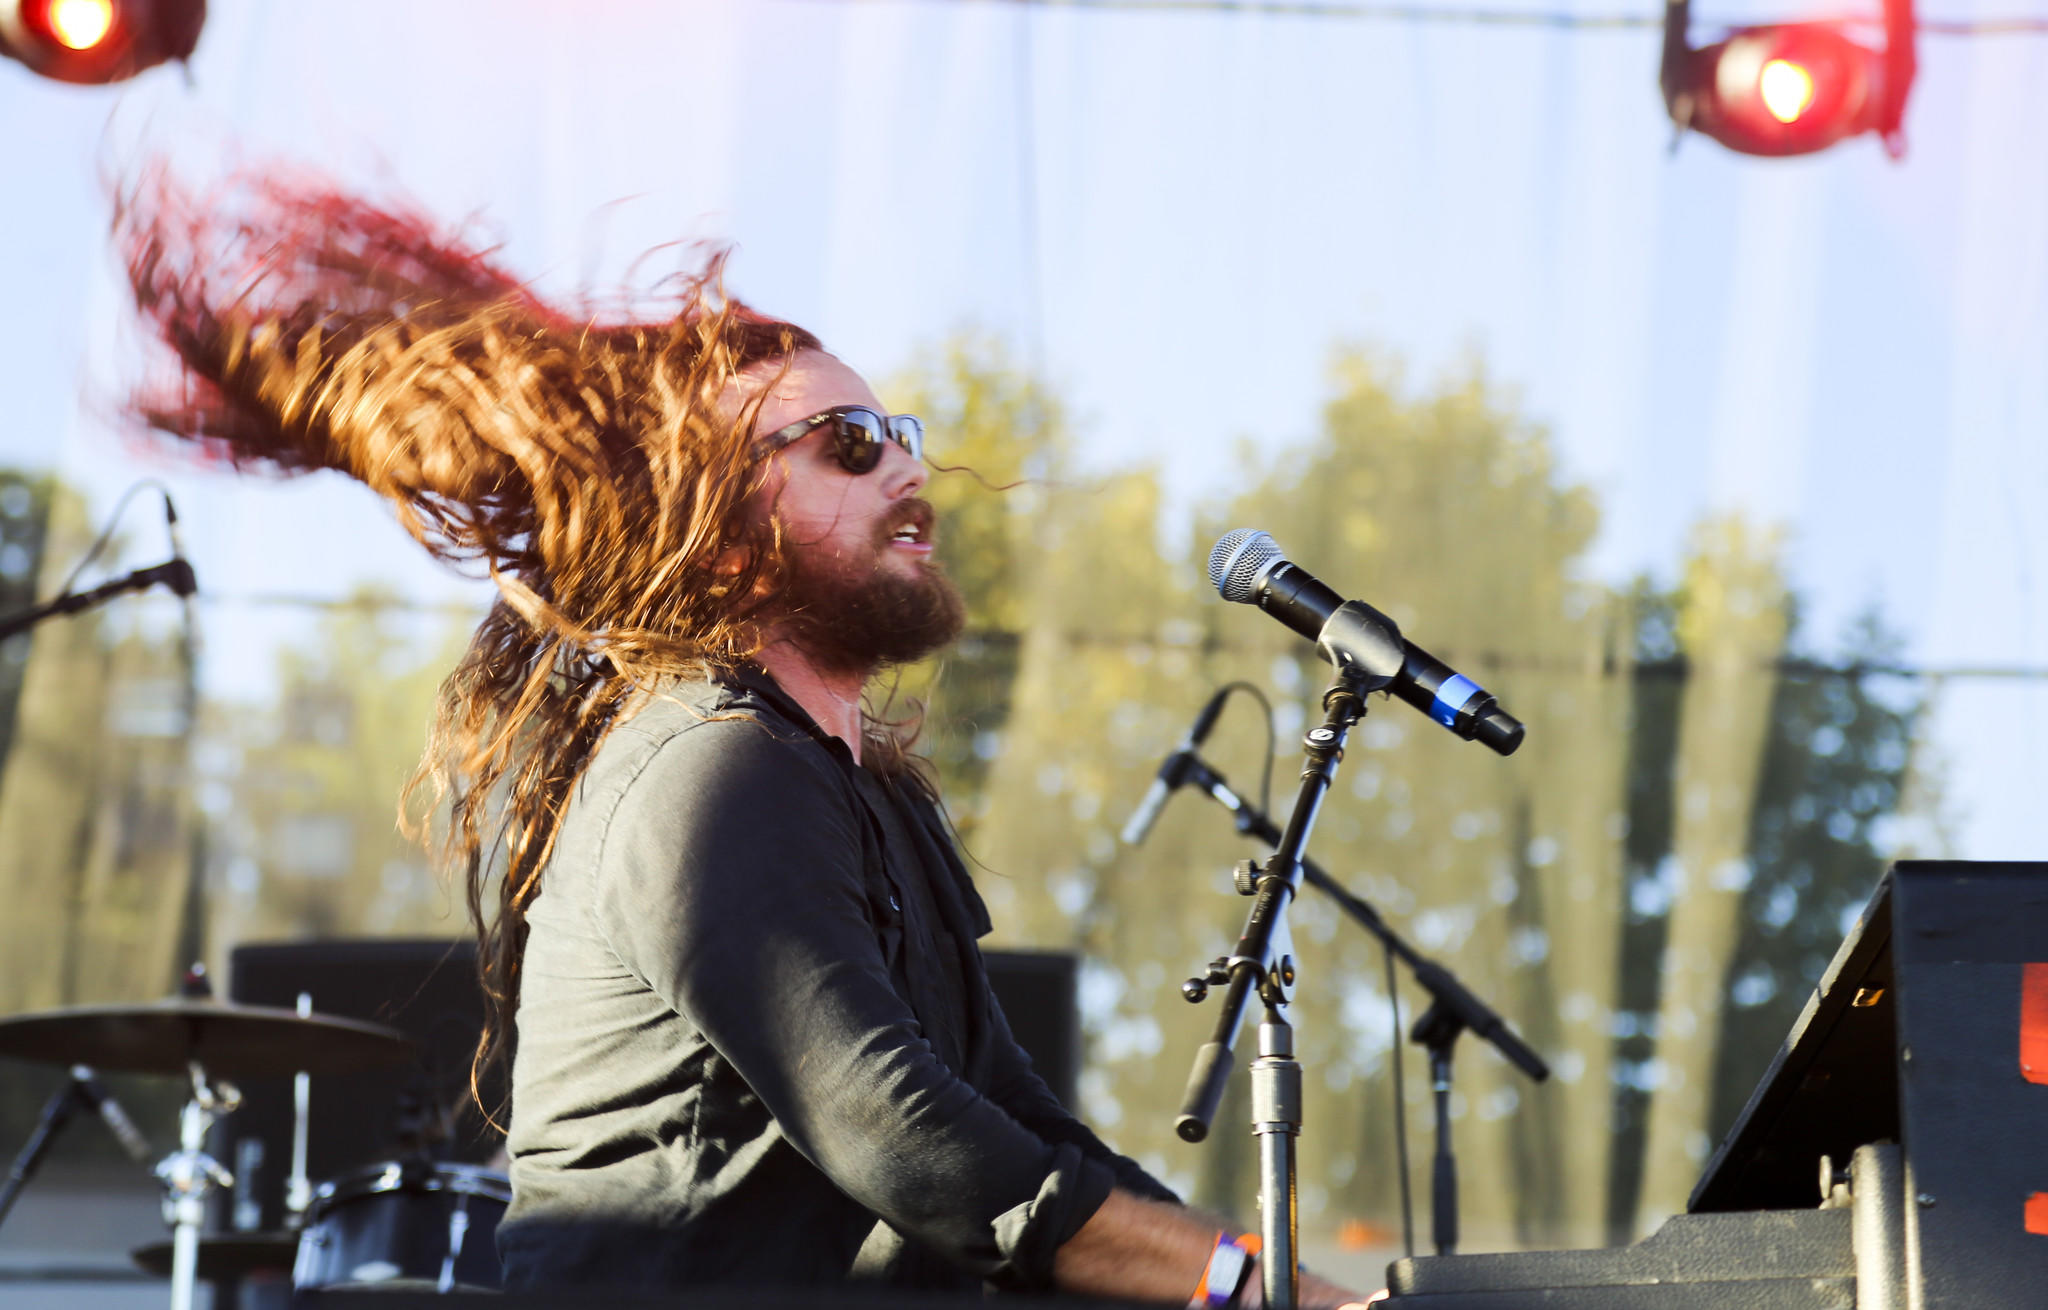 Lead singer J. Roddy Walston of J. Roddy Walston and The Business performs at the Shindig Festival on Saturday.